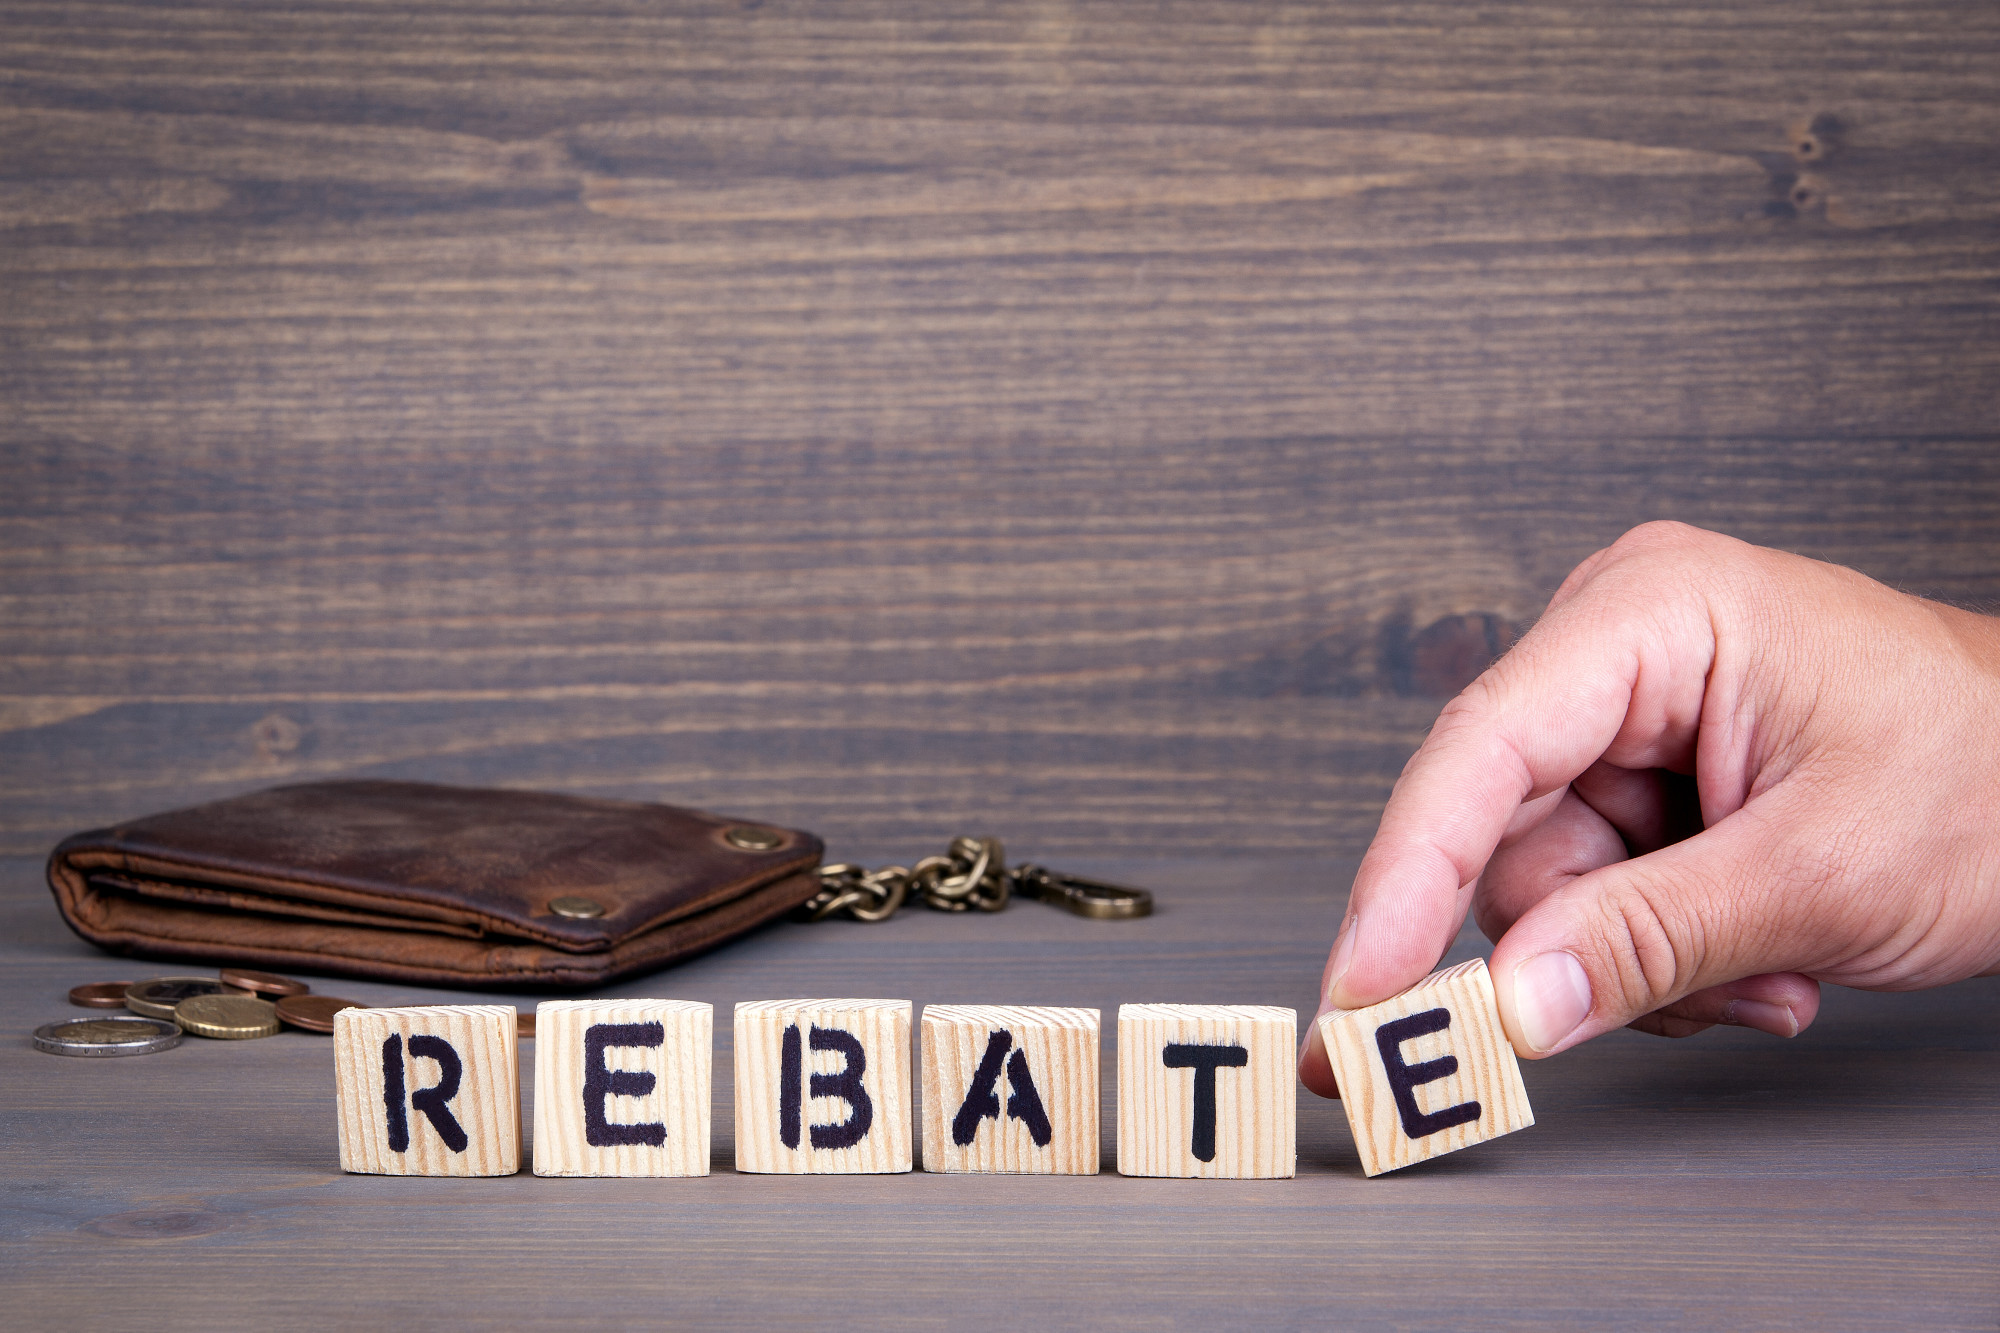 There are many different kinds of rebate apps that promise all sorts of things. How do you know when a rebate app is worth it?